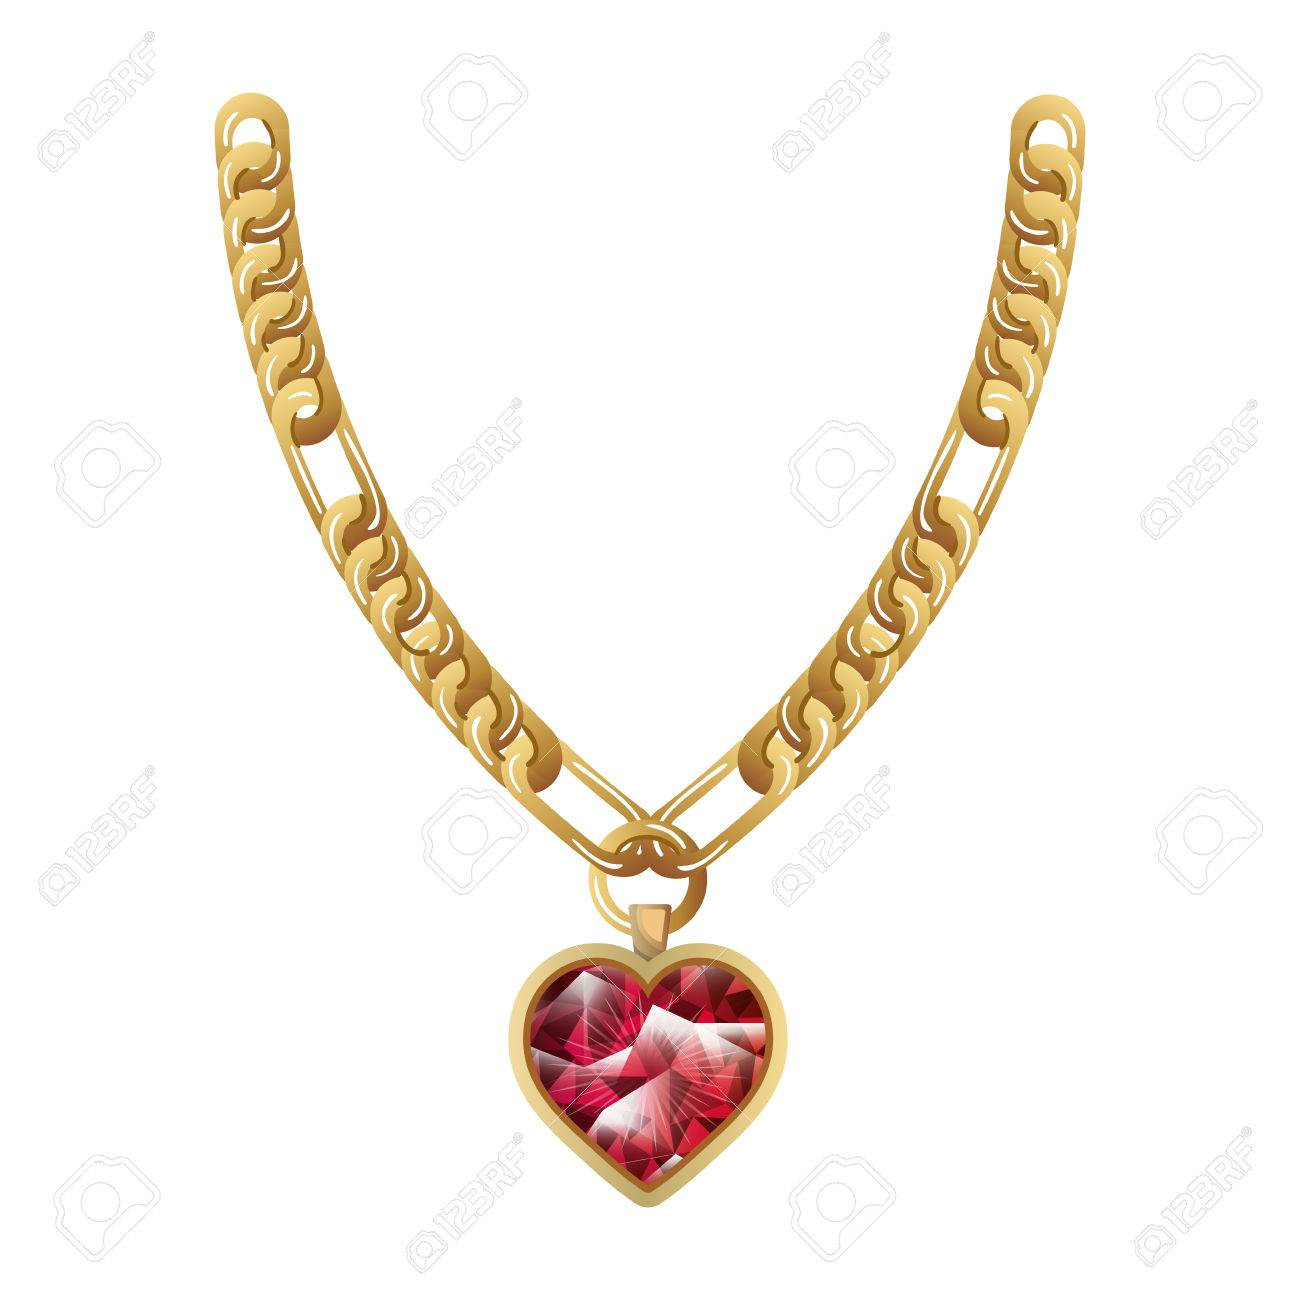 Jewelry Gold Necklace With Precious Stone Luxury And Fashion